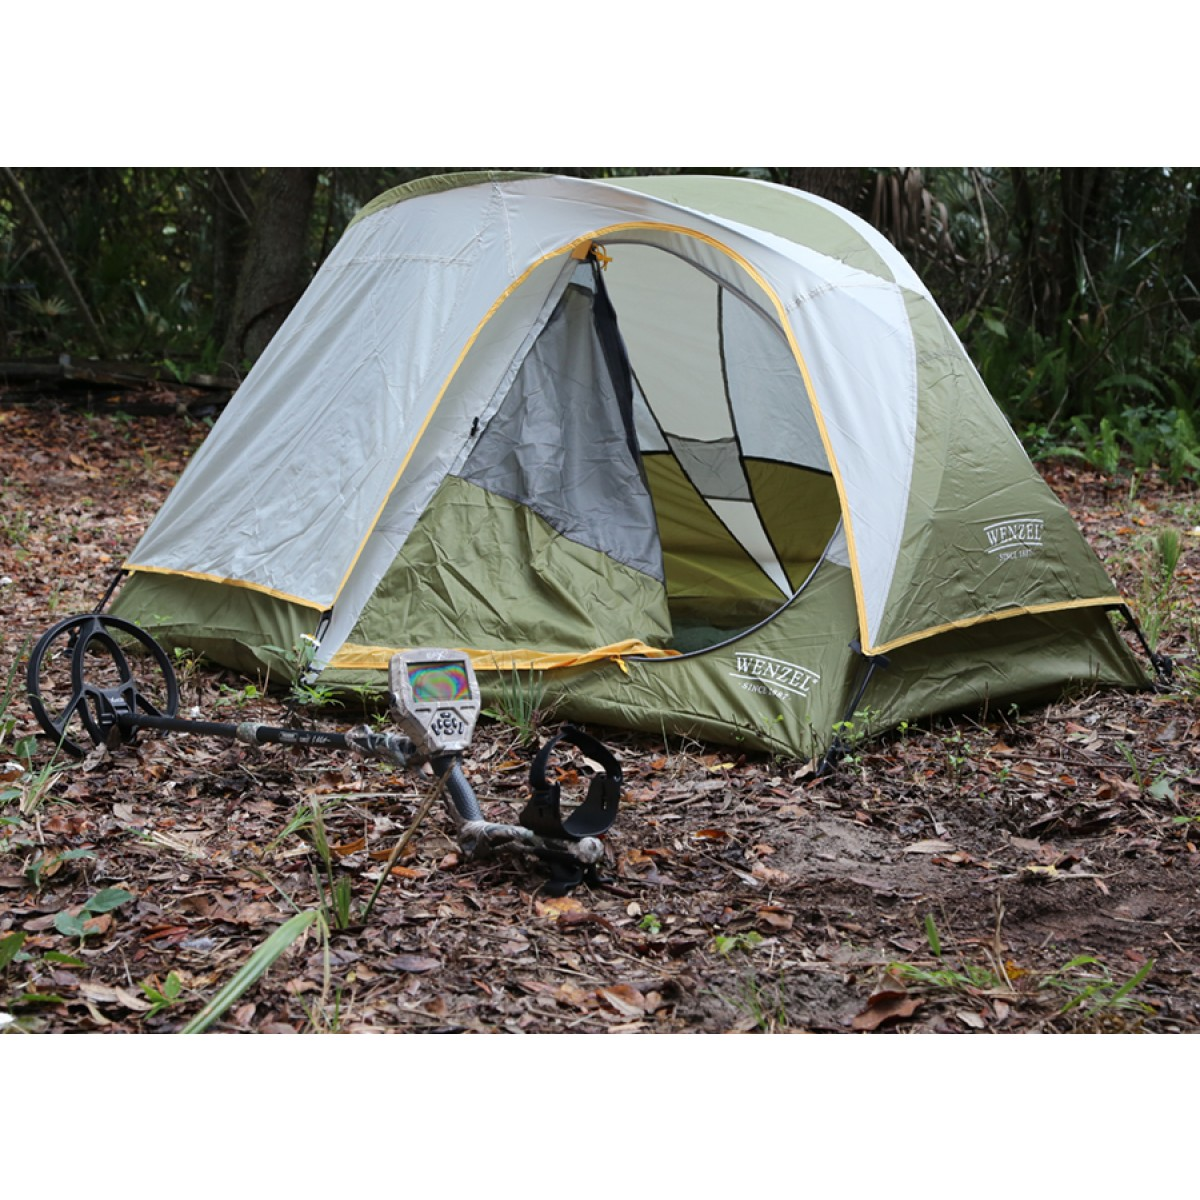 ... Wenzel Lone Tree 2 Person Tent 36501 Image 4 ...  sc 1 st  Kellyco & Wenzel Lone Tree 2 Person Tent- Kellyco